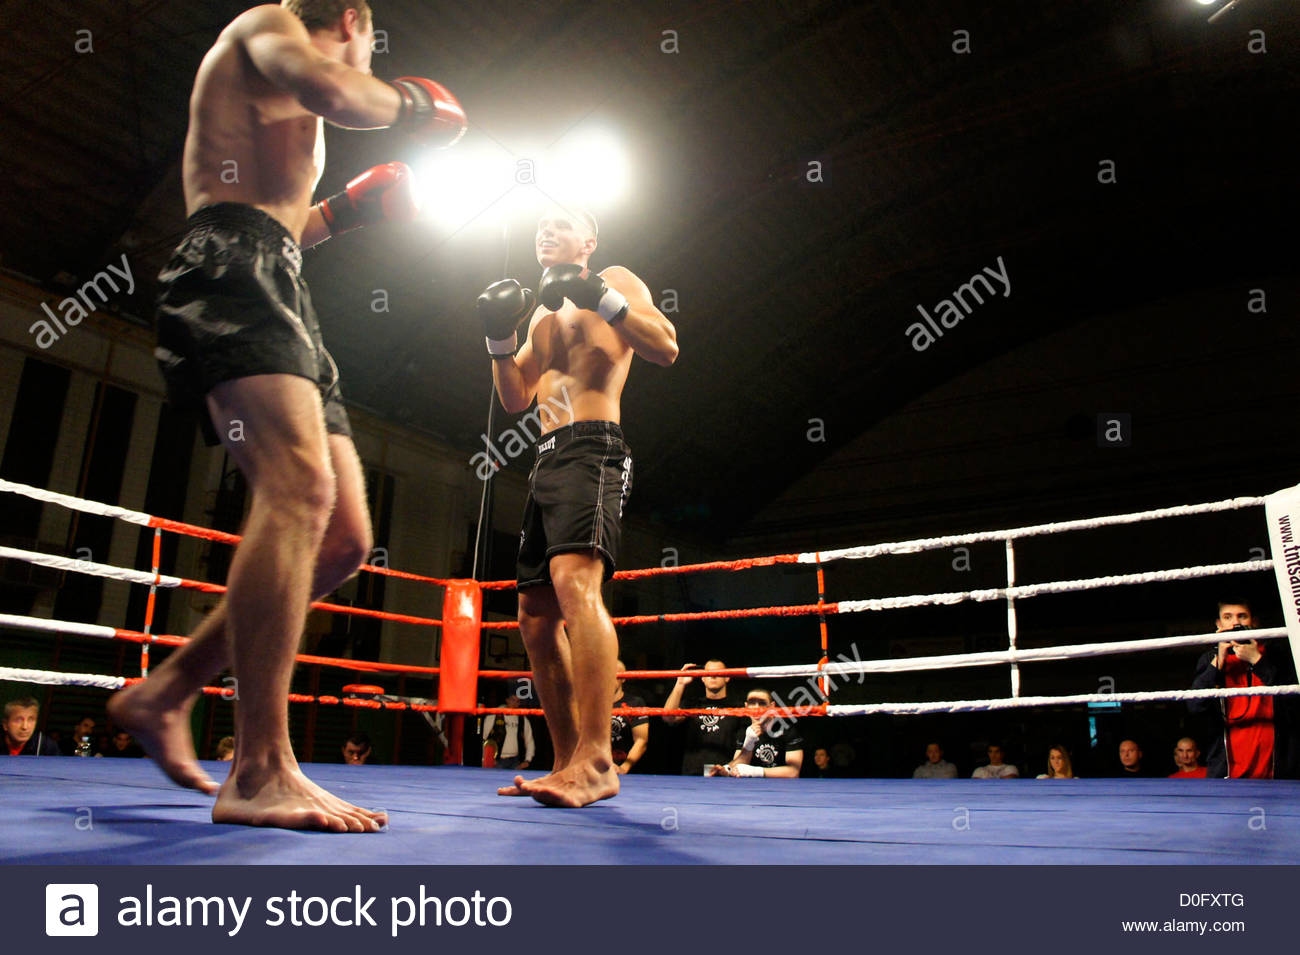 November 25th, 2012. Croatia defeats Poland in Ultimate Fighting Challenge in Samobor,Croatia - Stock Image